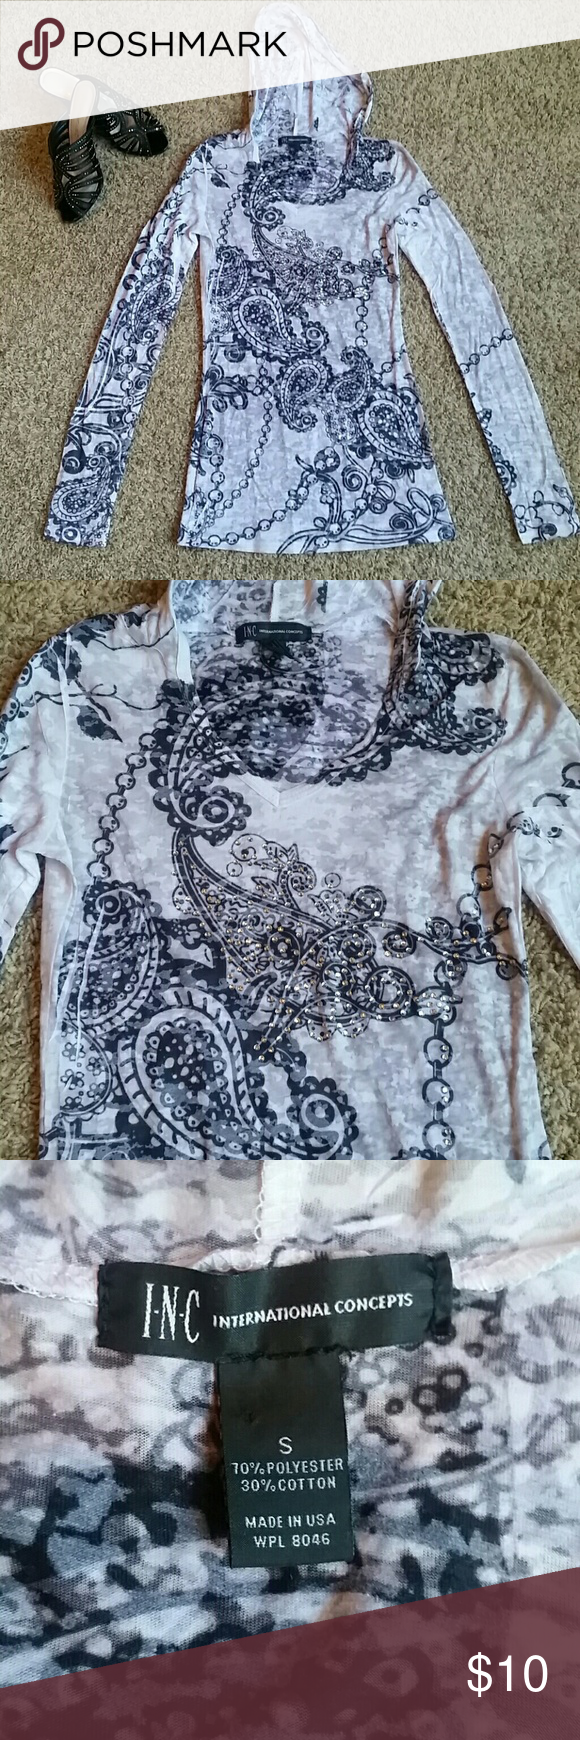 Paisley Print Rhinestone Studded Hooded Shirt NWOT Very thin and light weight... never worn.  It's a little too tight for me. BEAUTIFUL INC International Concepts Tops